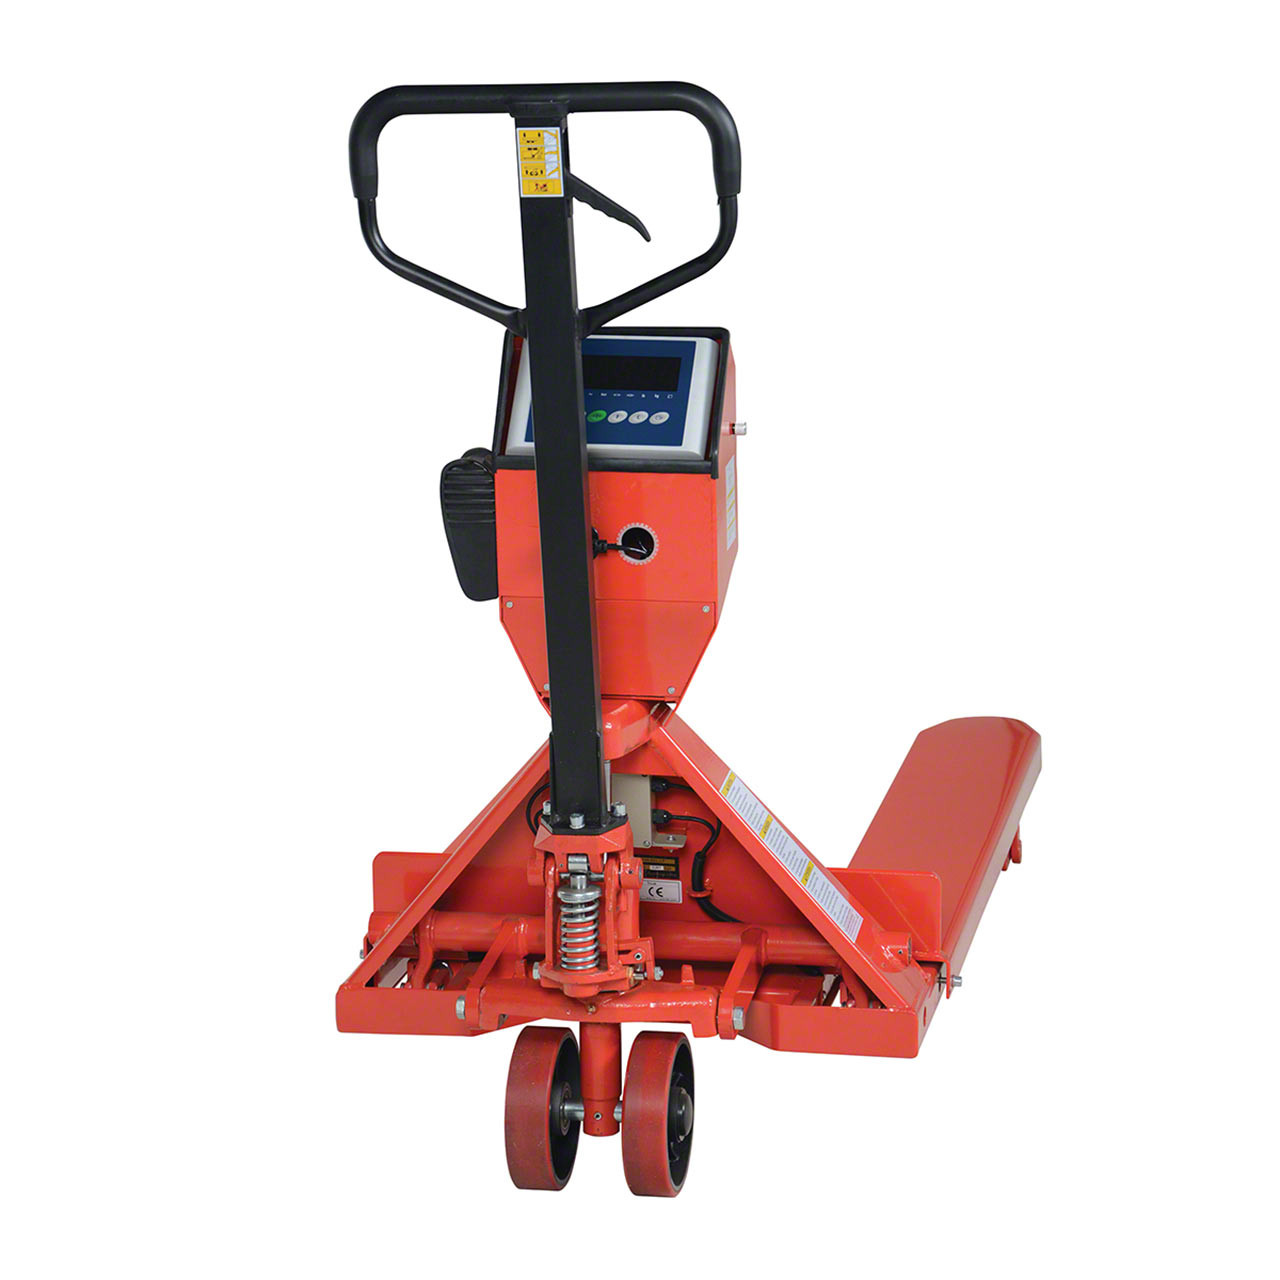 Vestil's pallet truck with scale and printer